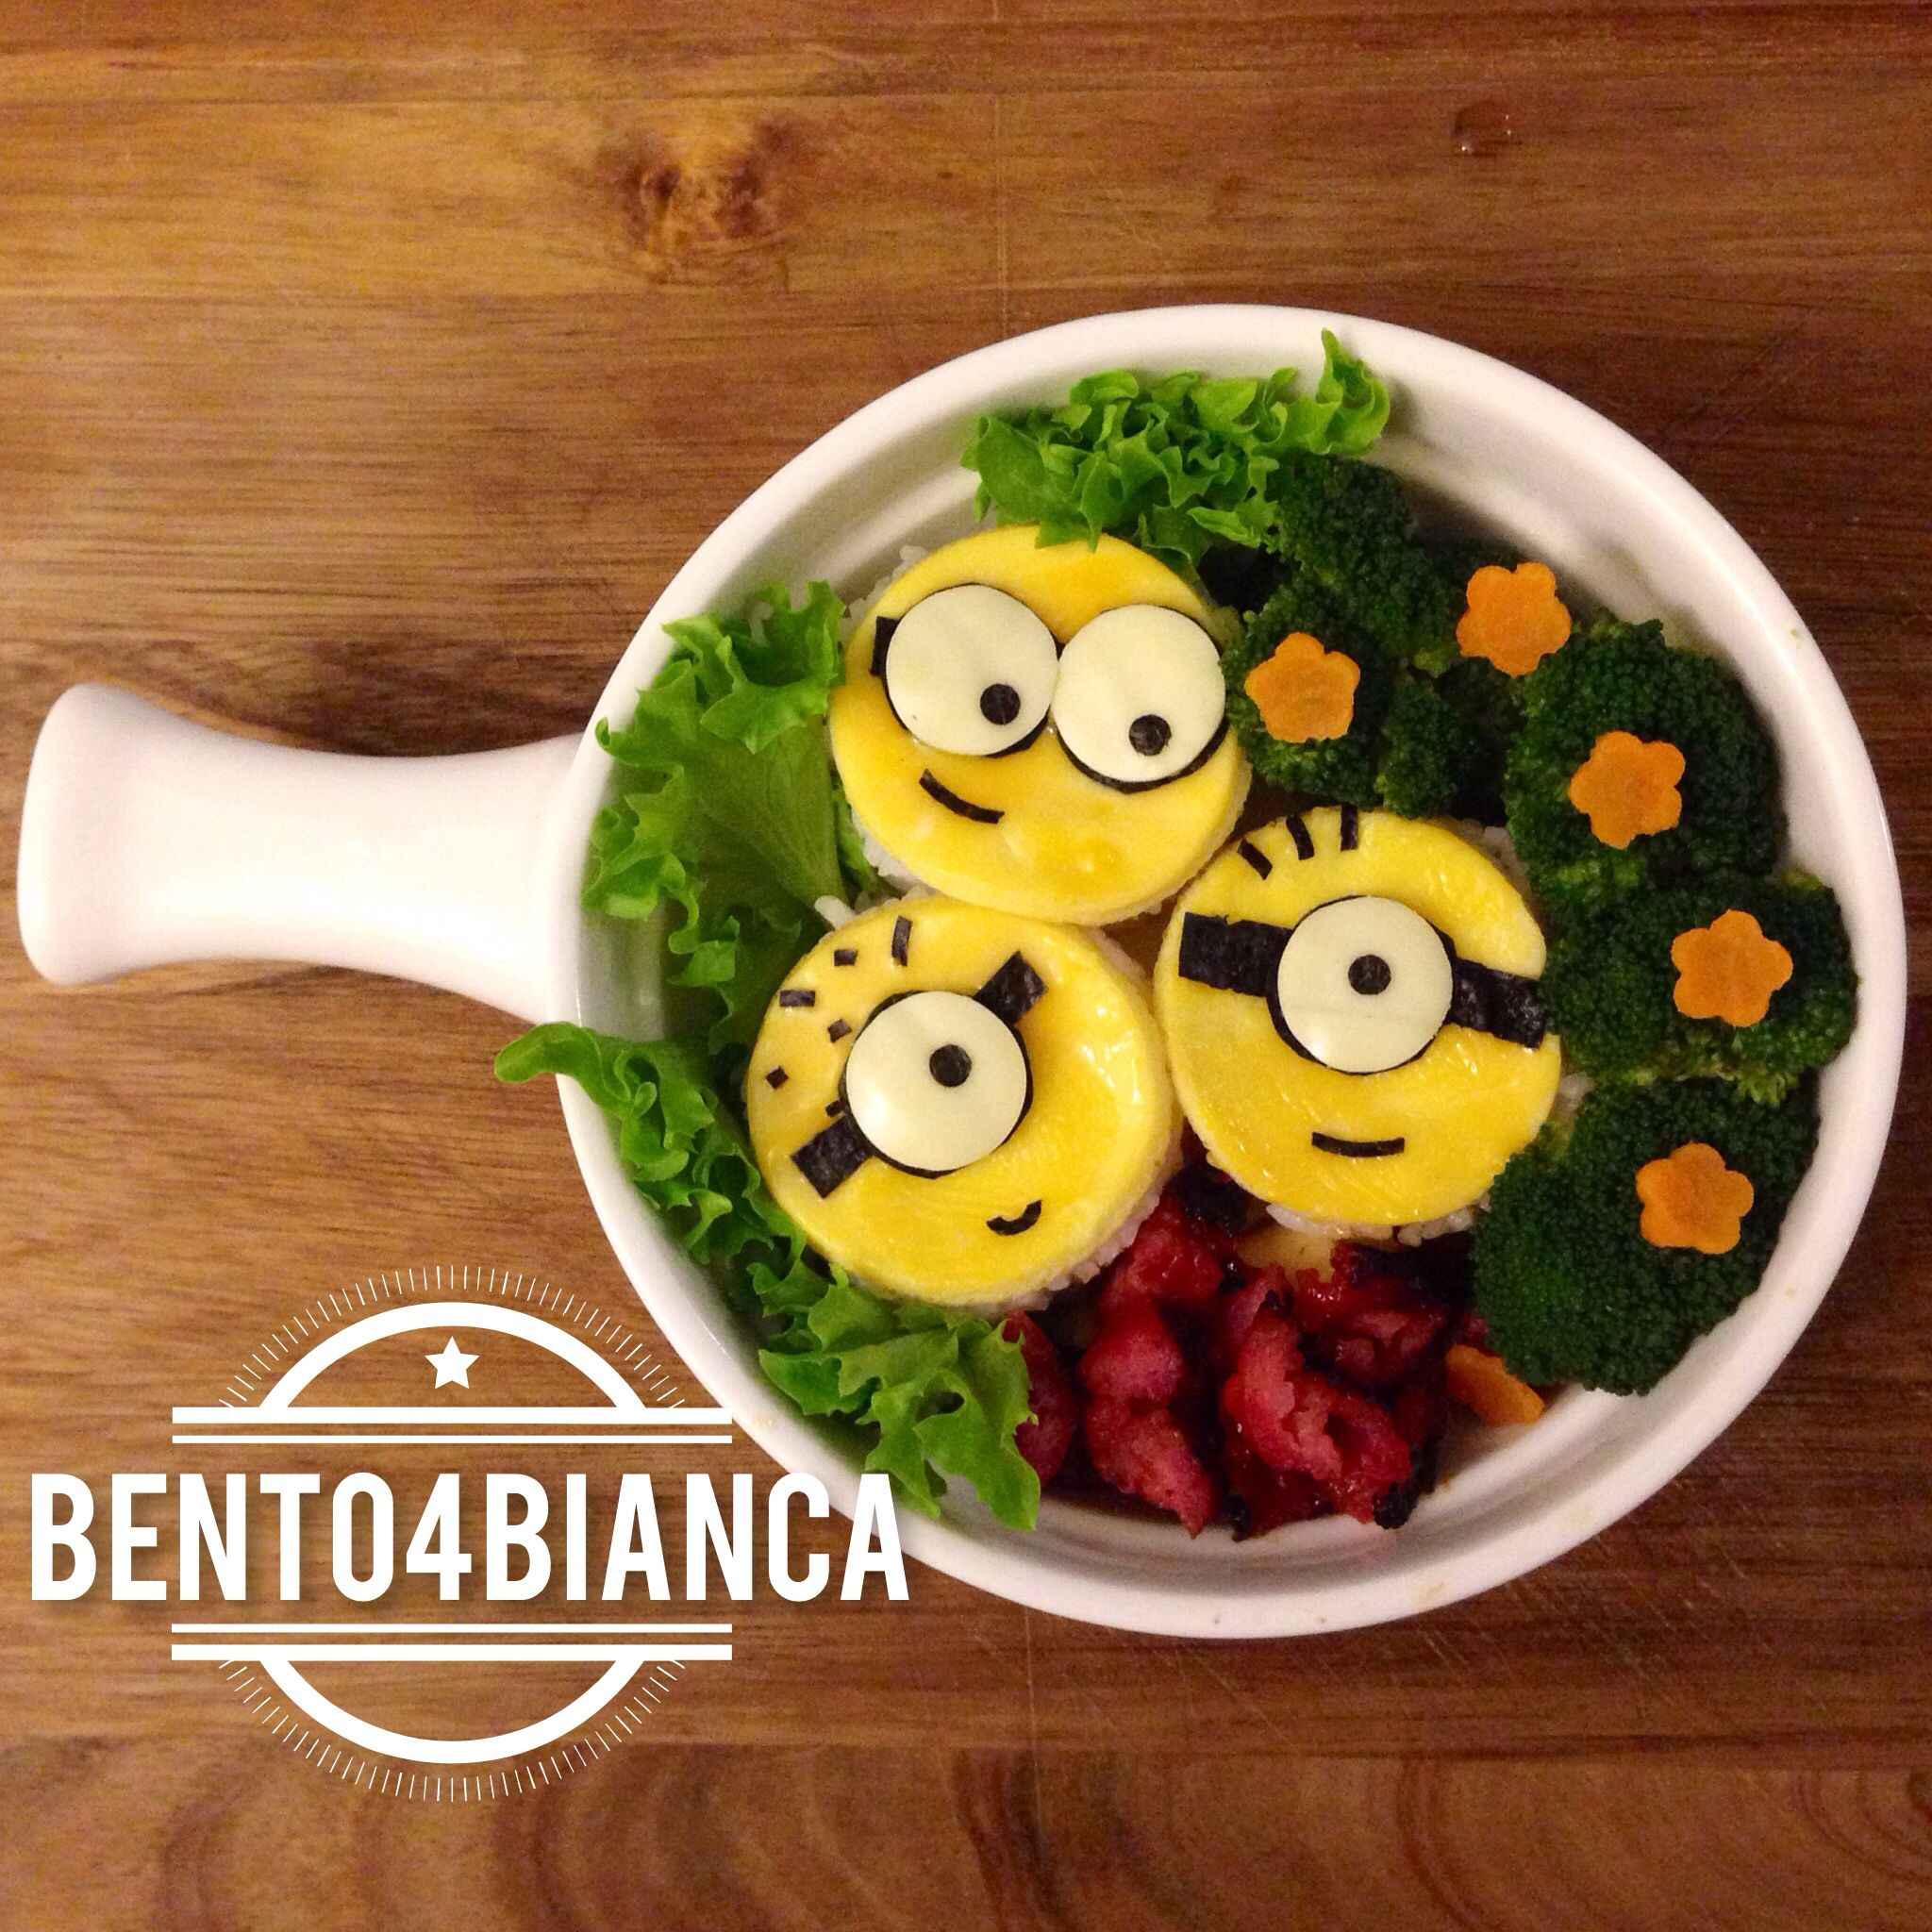 minions bento be party bites pinterest kinder essen kochen und backen und backen. Black Bedroom Furniture Sets. Home Design Ideas